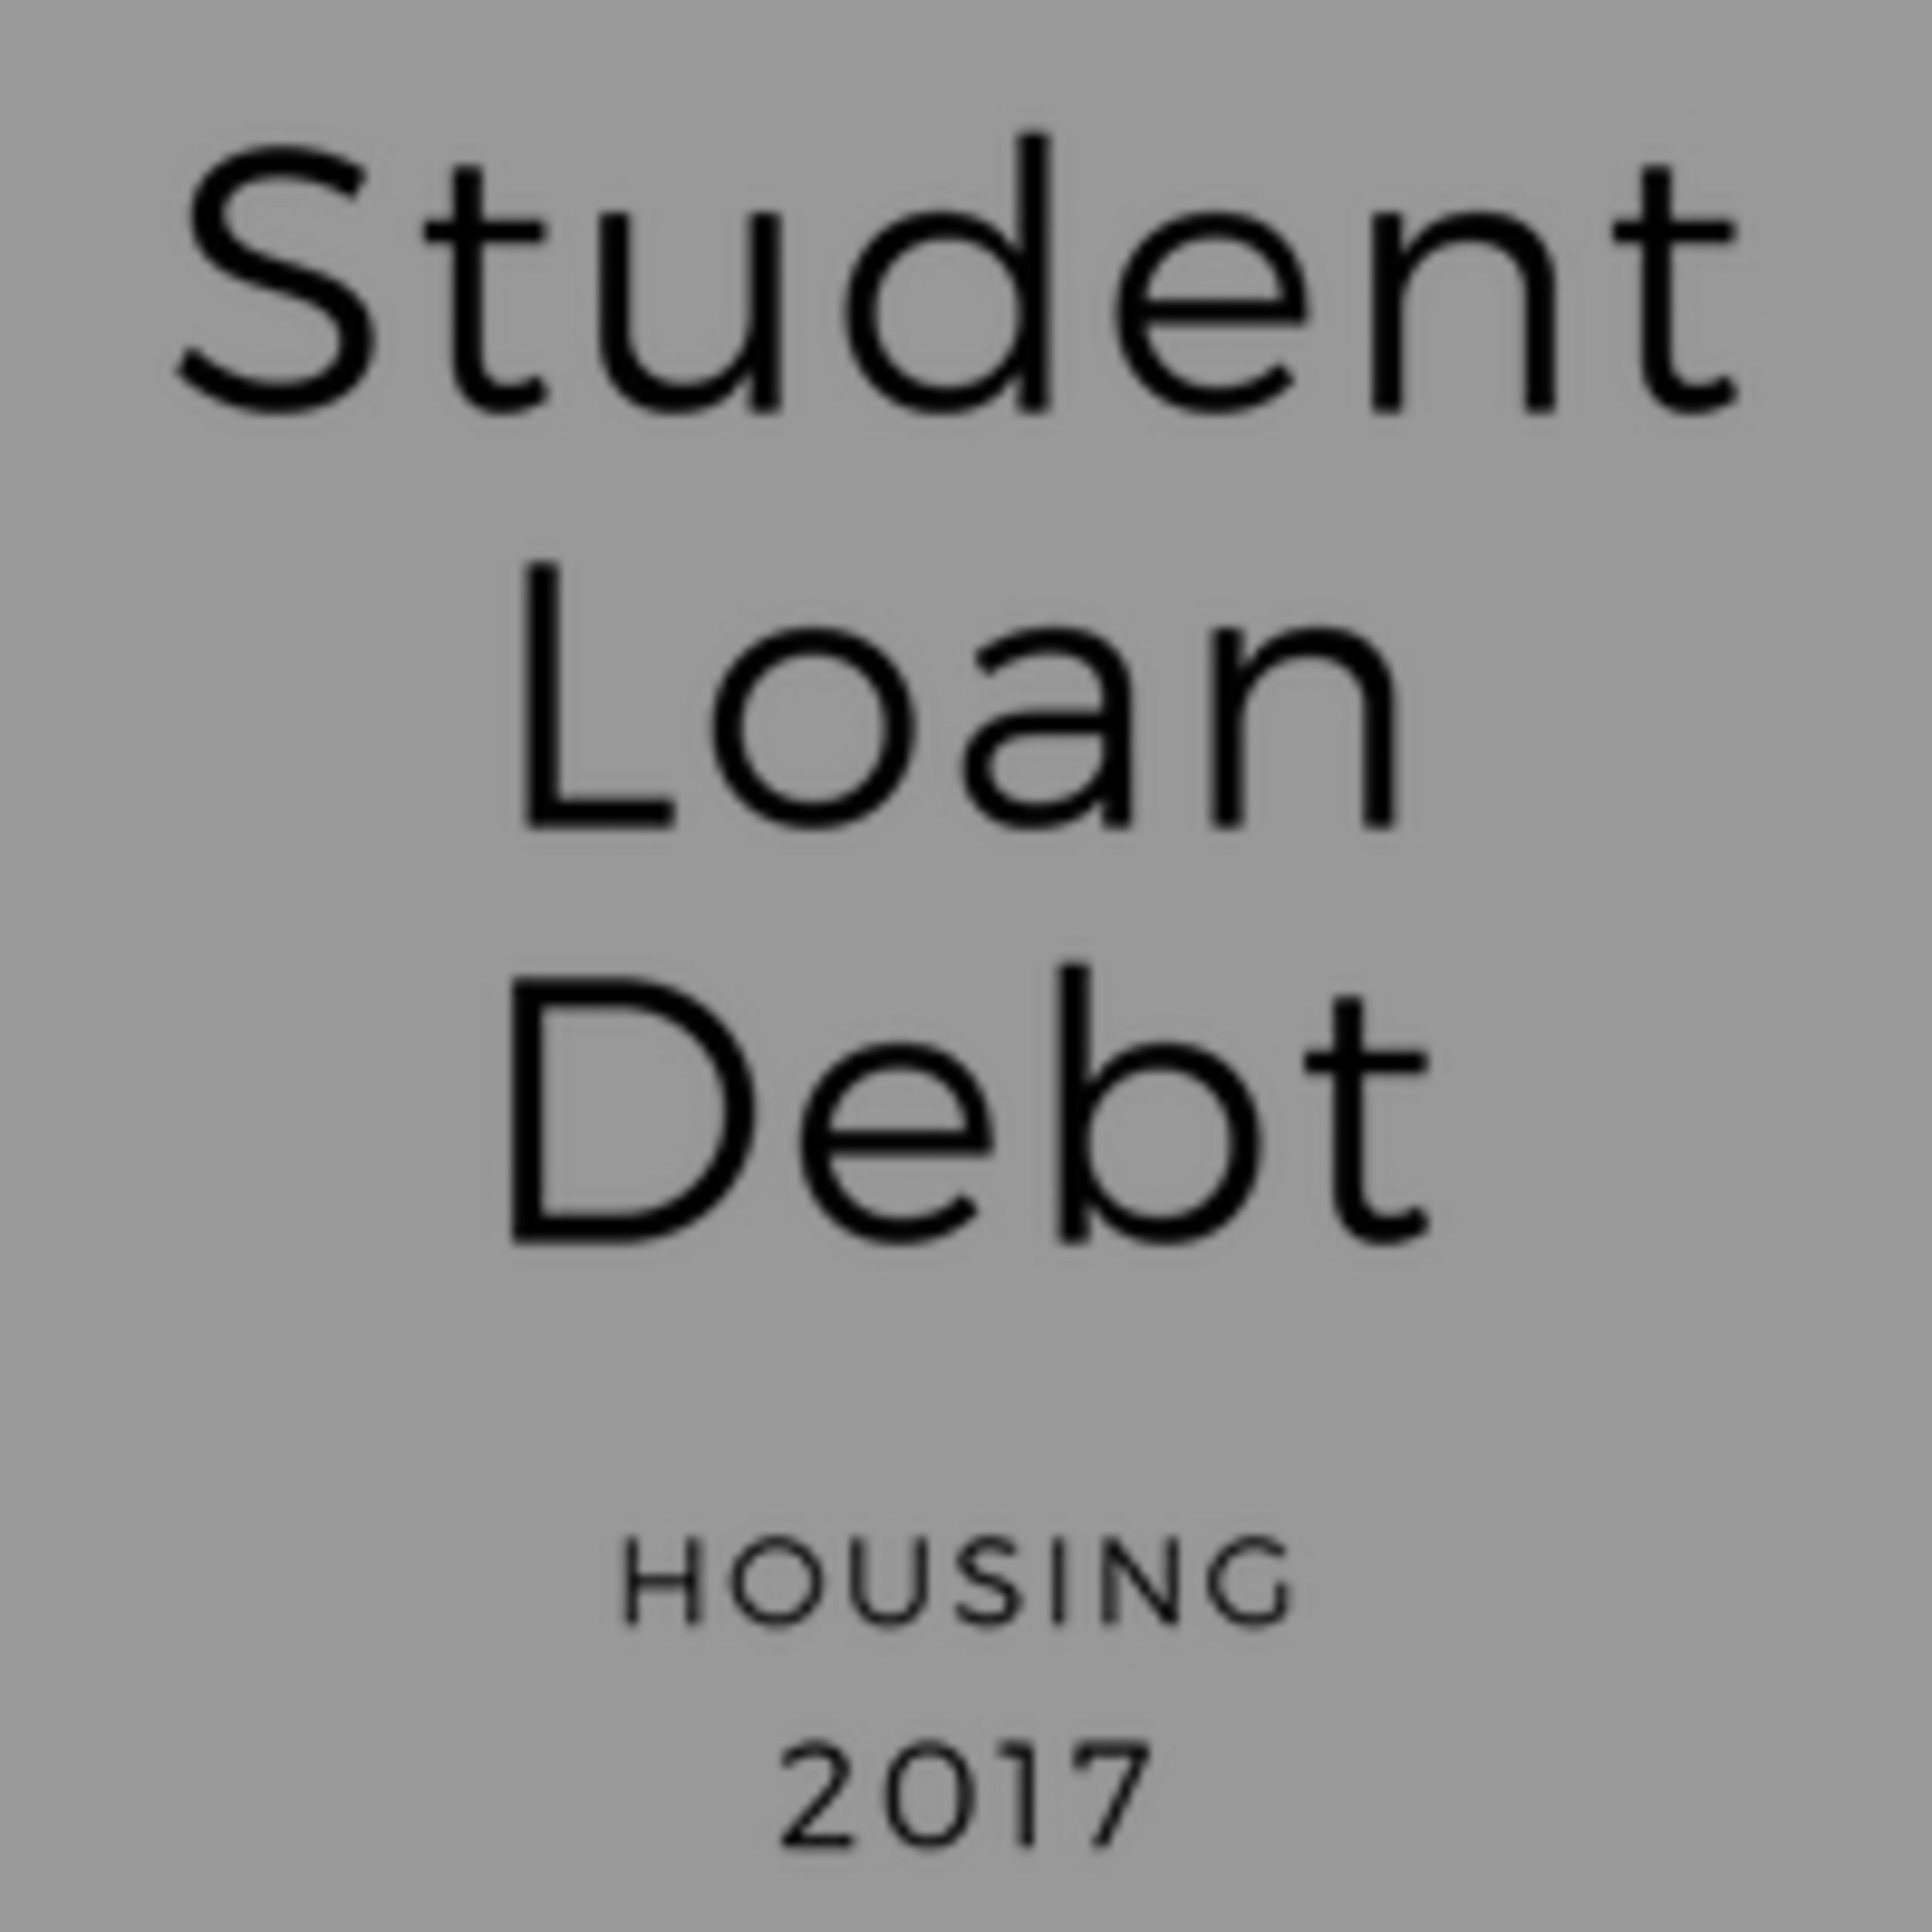 Student Loan Debt and Housing 2017